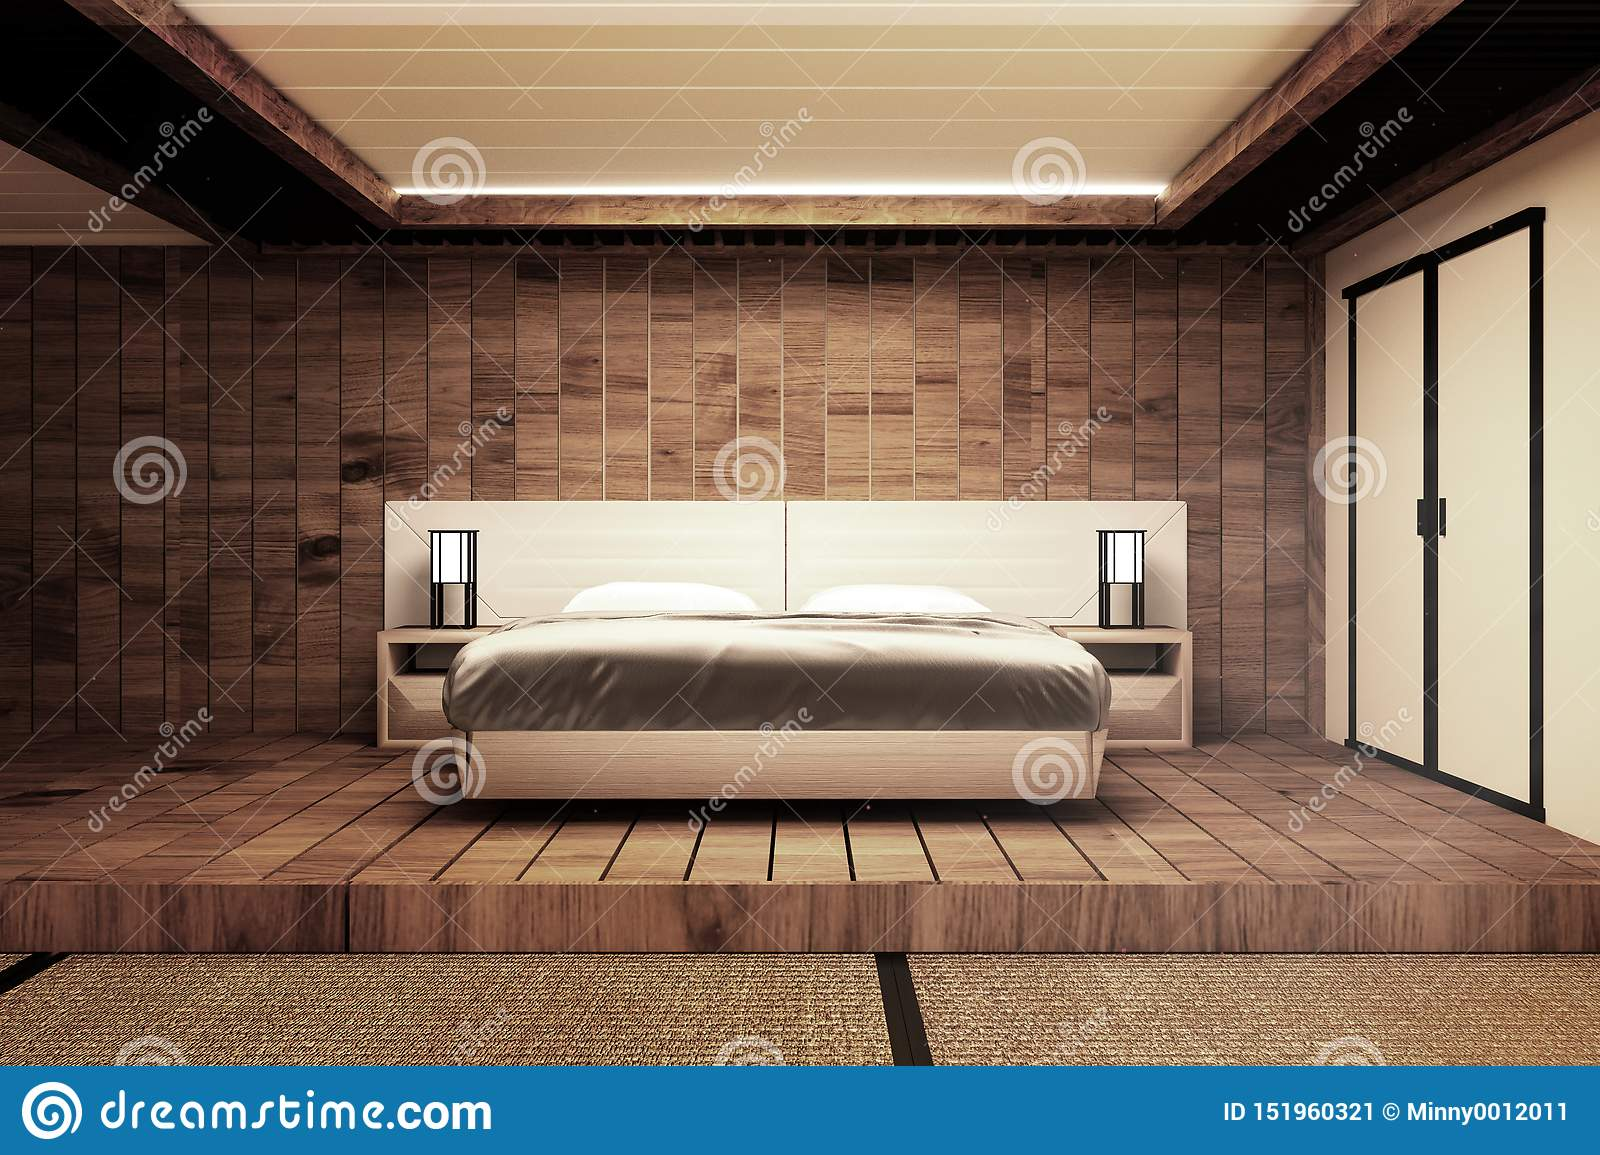 Interior Luxury Modern Japanese Style Bedroom Mock Up Designing The Most Beautiful 3d Rendering Stock Illustration Illustration Of Hotelroom Design 151960321